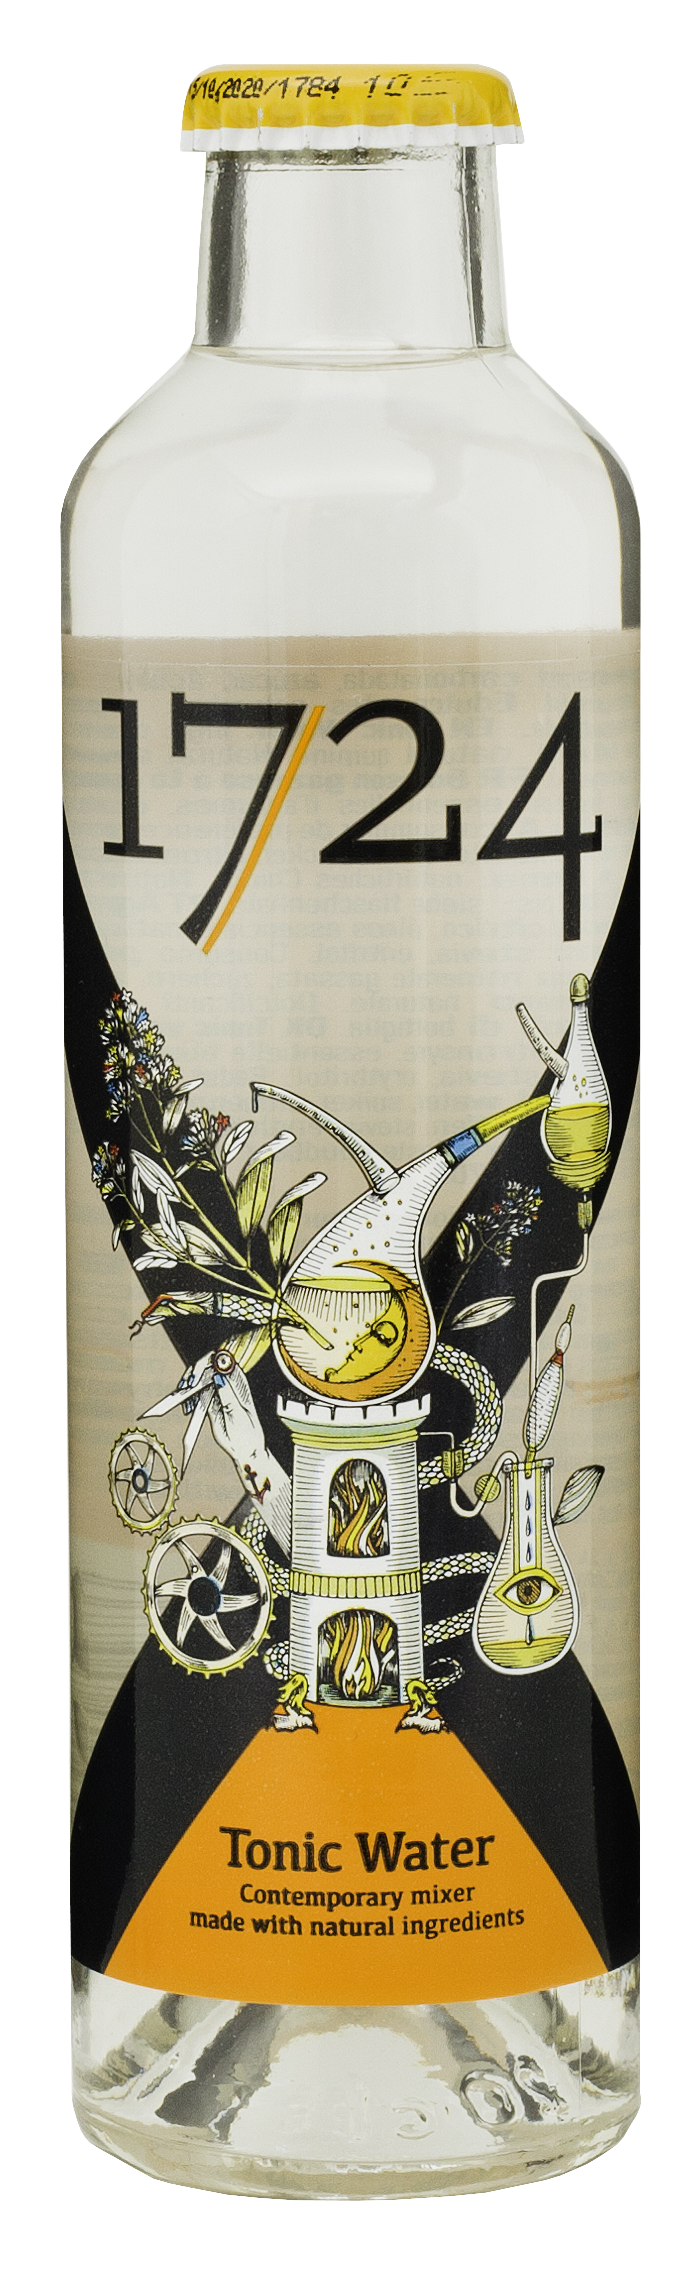 1724 tonic. 24x20cl bottles.